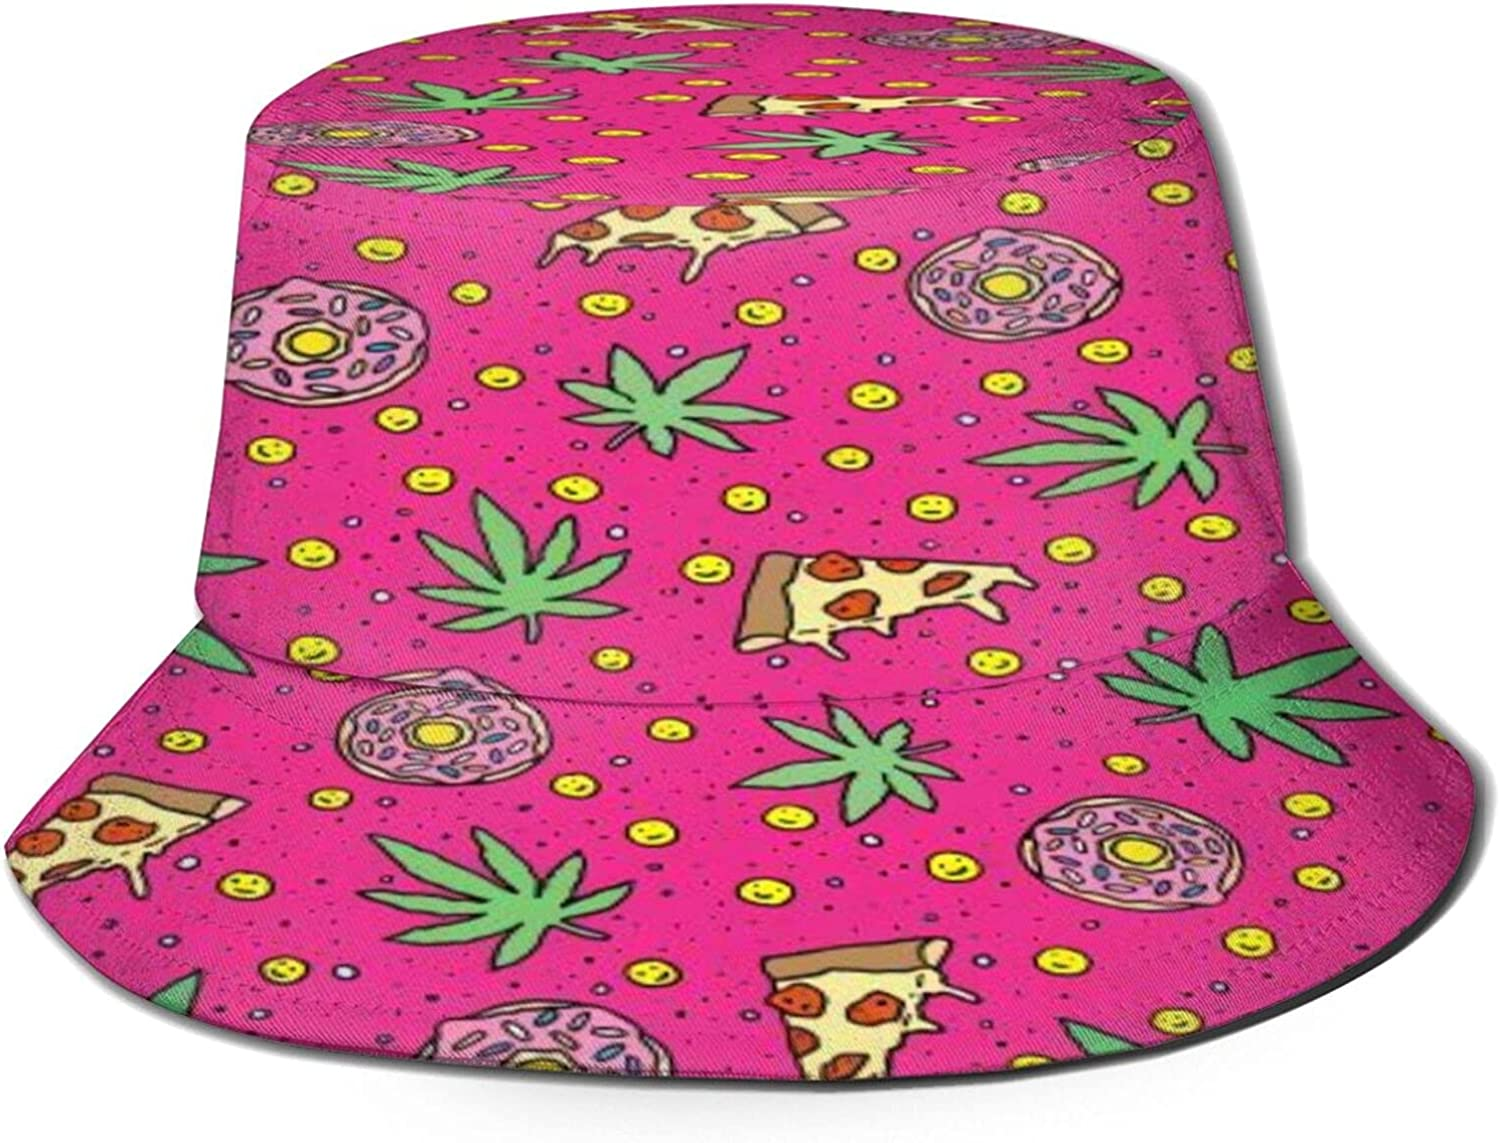 Pizza Los Angeles Mall and Cannabis Bucket Hat Summer Limited price Fis Sun Packable Unisex